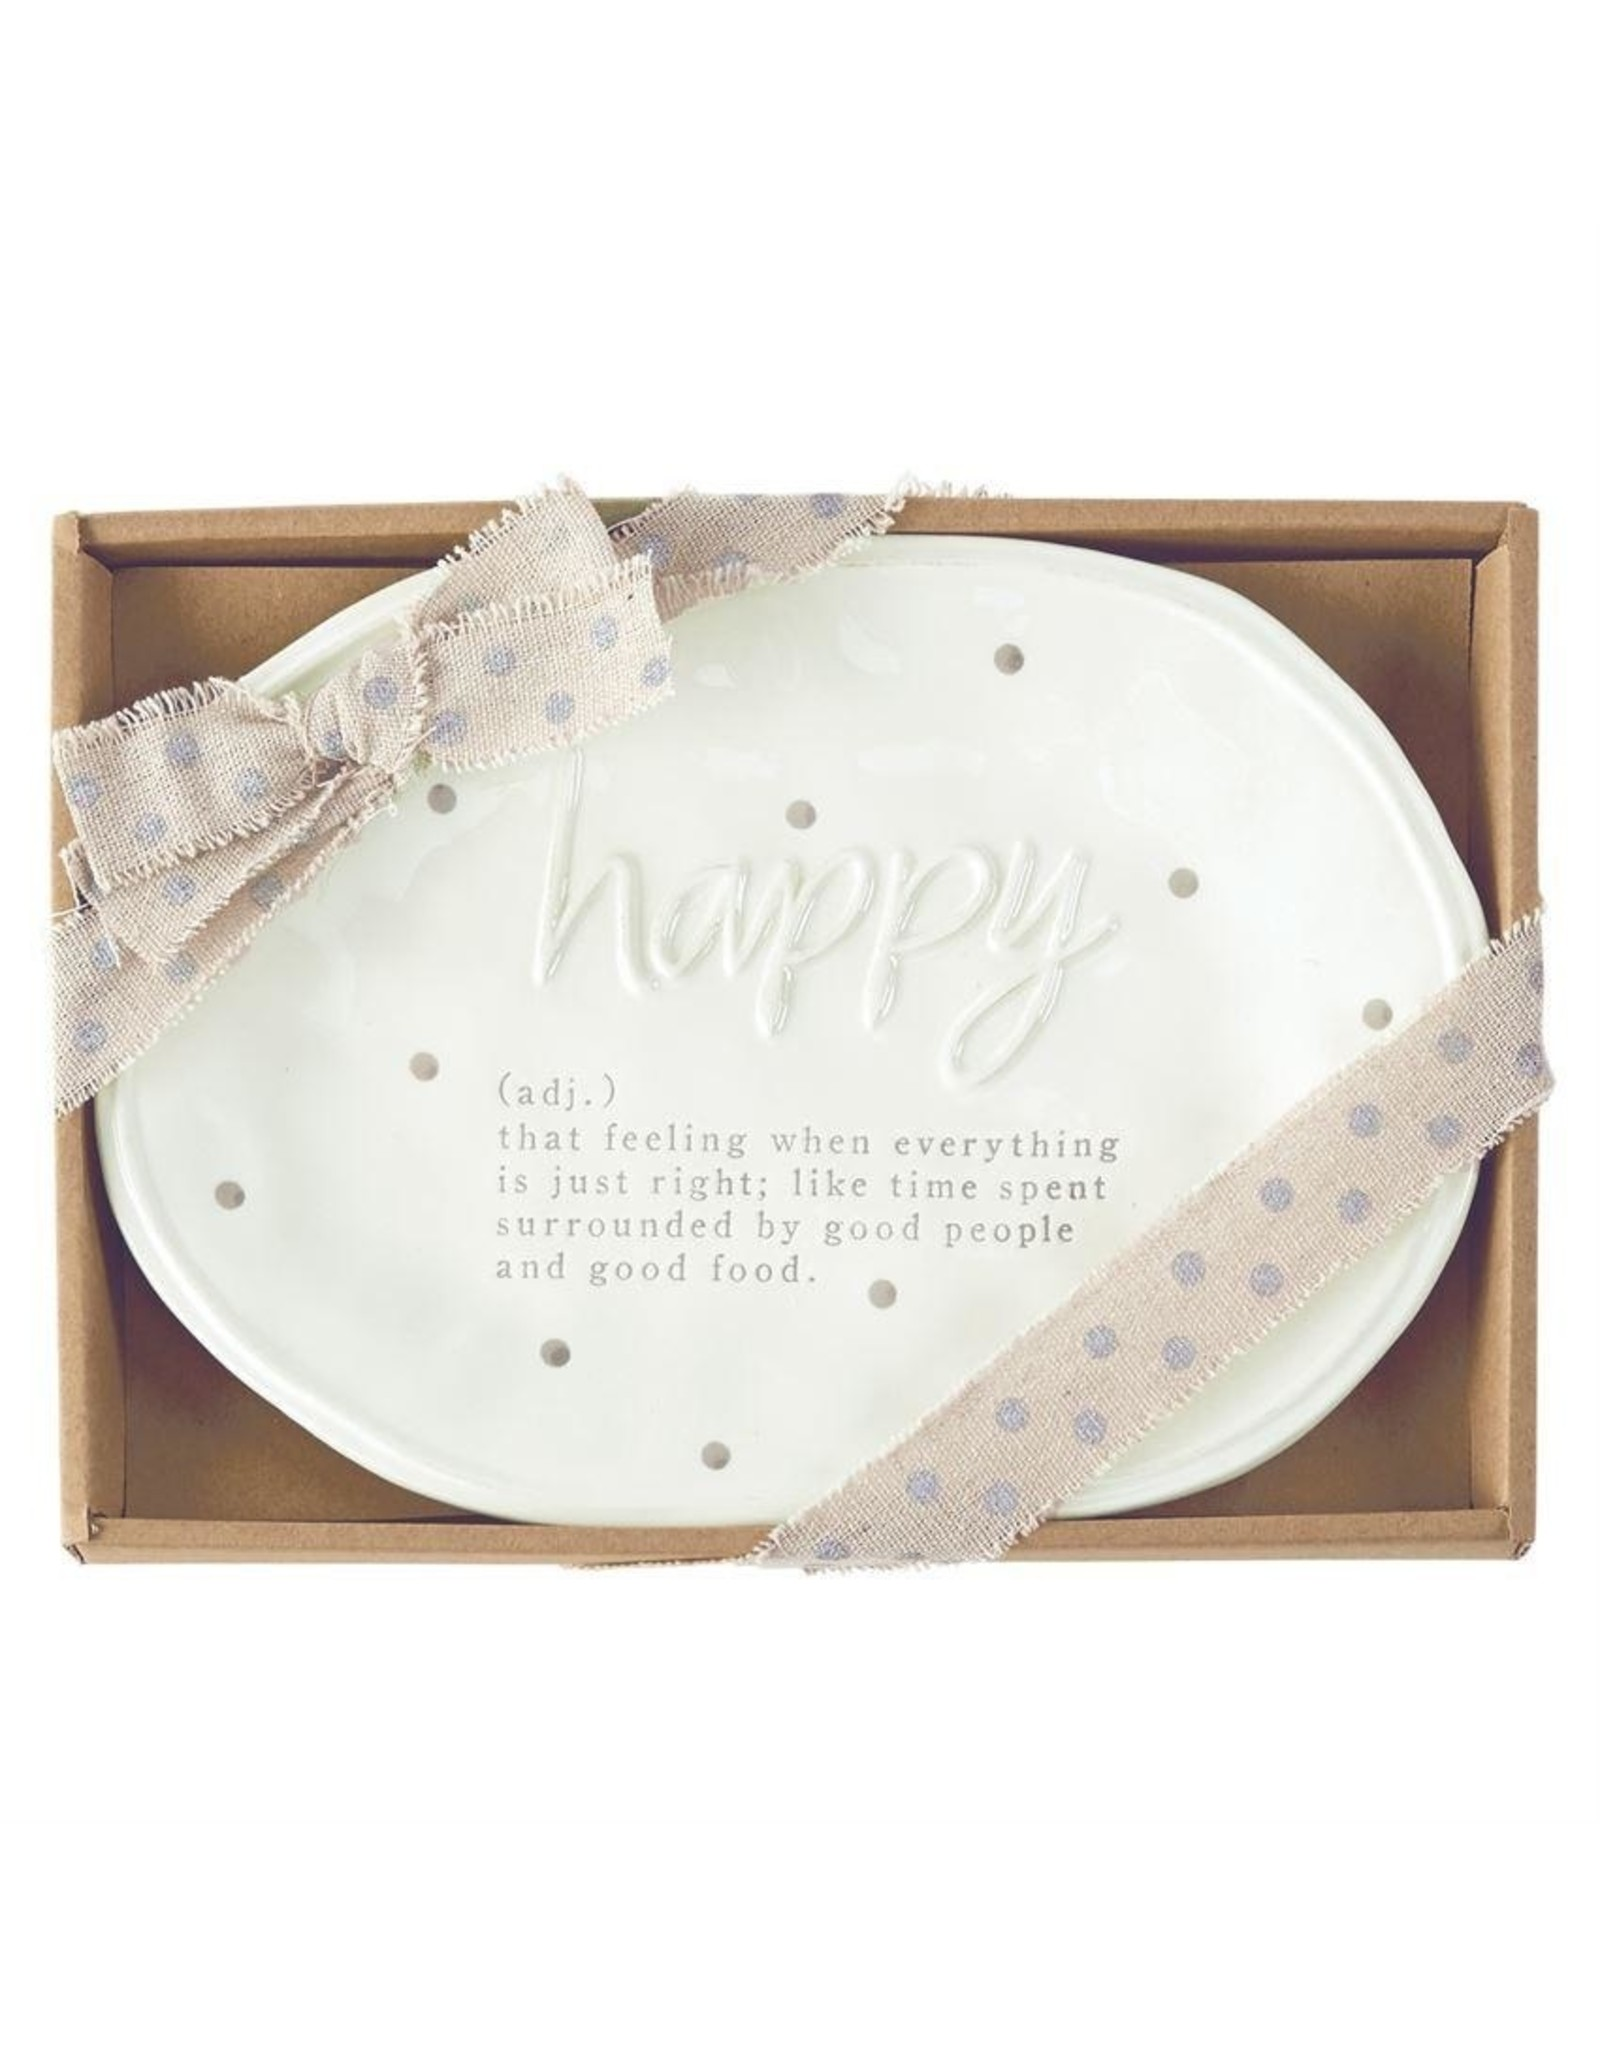 Mud Pie Happy Definition Plate Gift Boxed 10.5x7.5 inch